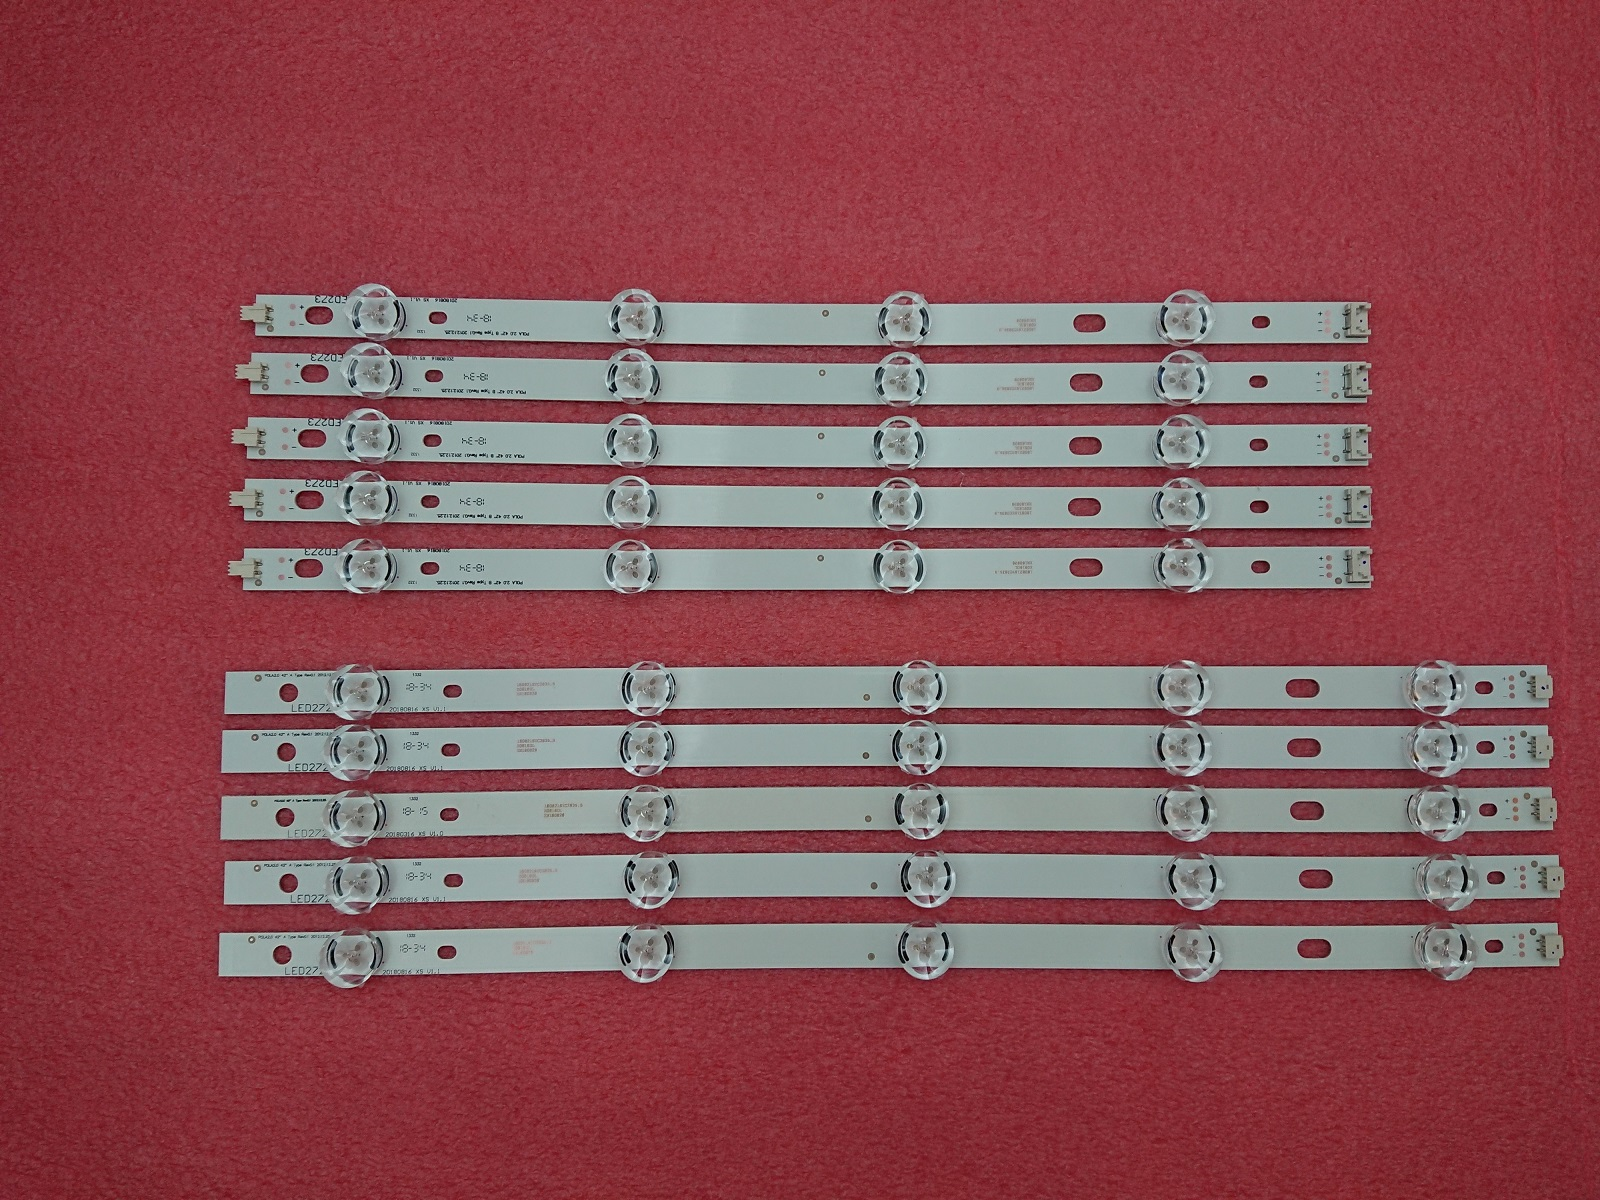 Kit 10pcs LED strip Replacement for LG T420HVN05.2 innotek POLA2.0 42 inch A B POLA 2.0 42